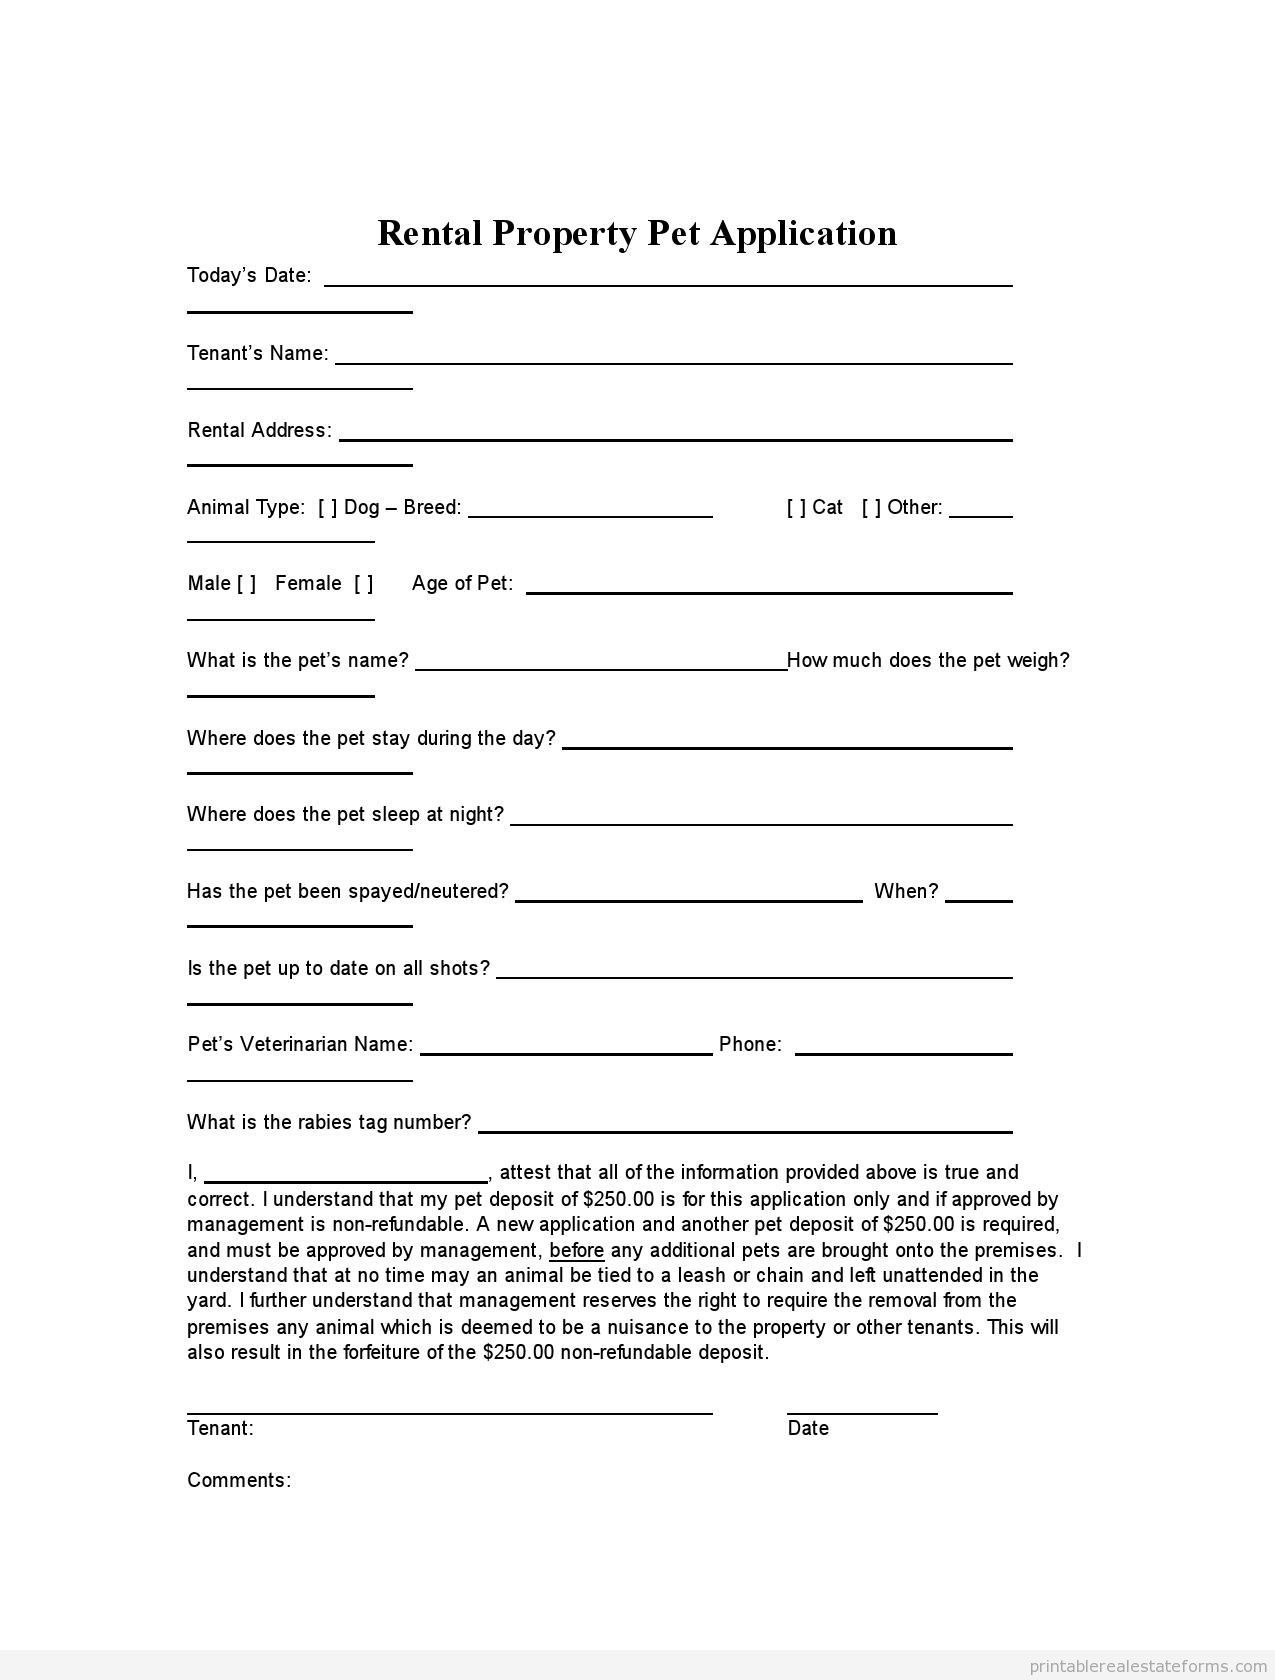 Printable Rental Property Pet Application Template   Sample